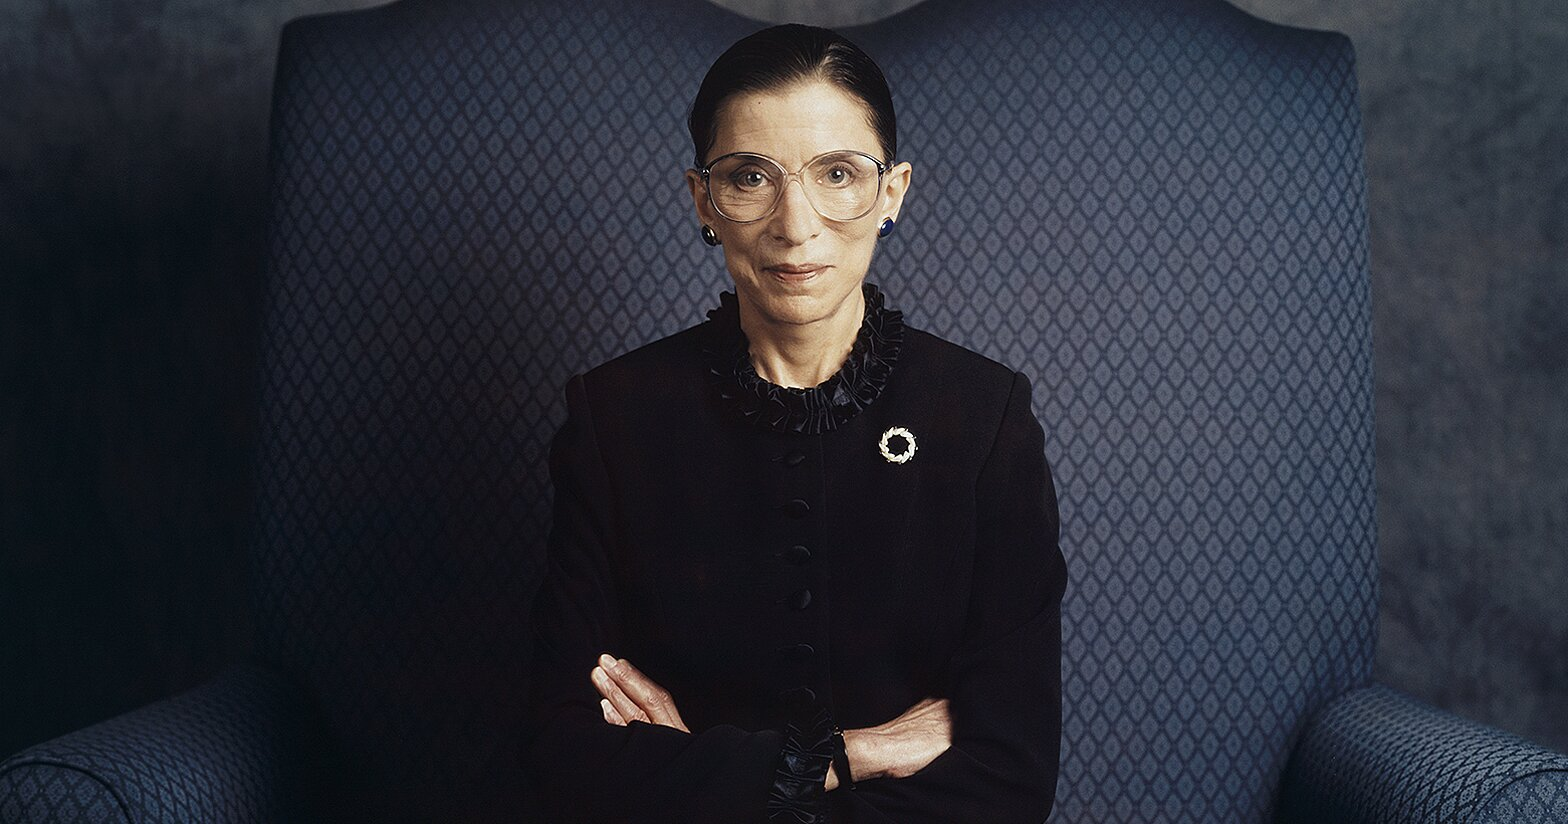 Ruth Bader Ginsburg, Supreme Court Justice and Liberal Icon, Dies at 87